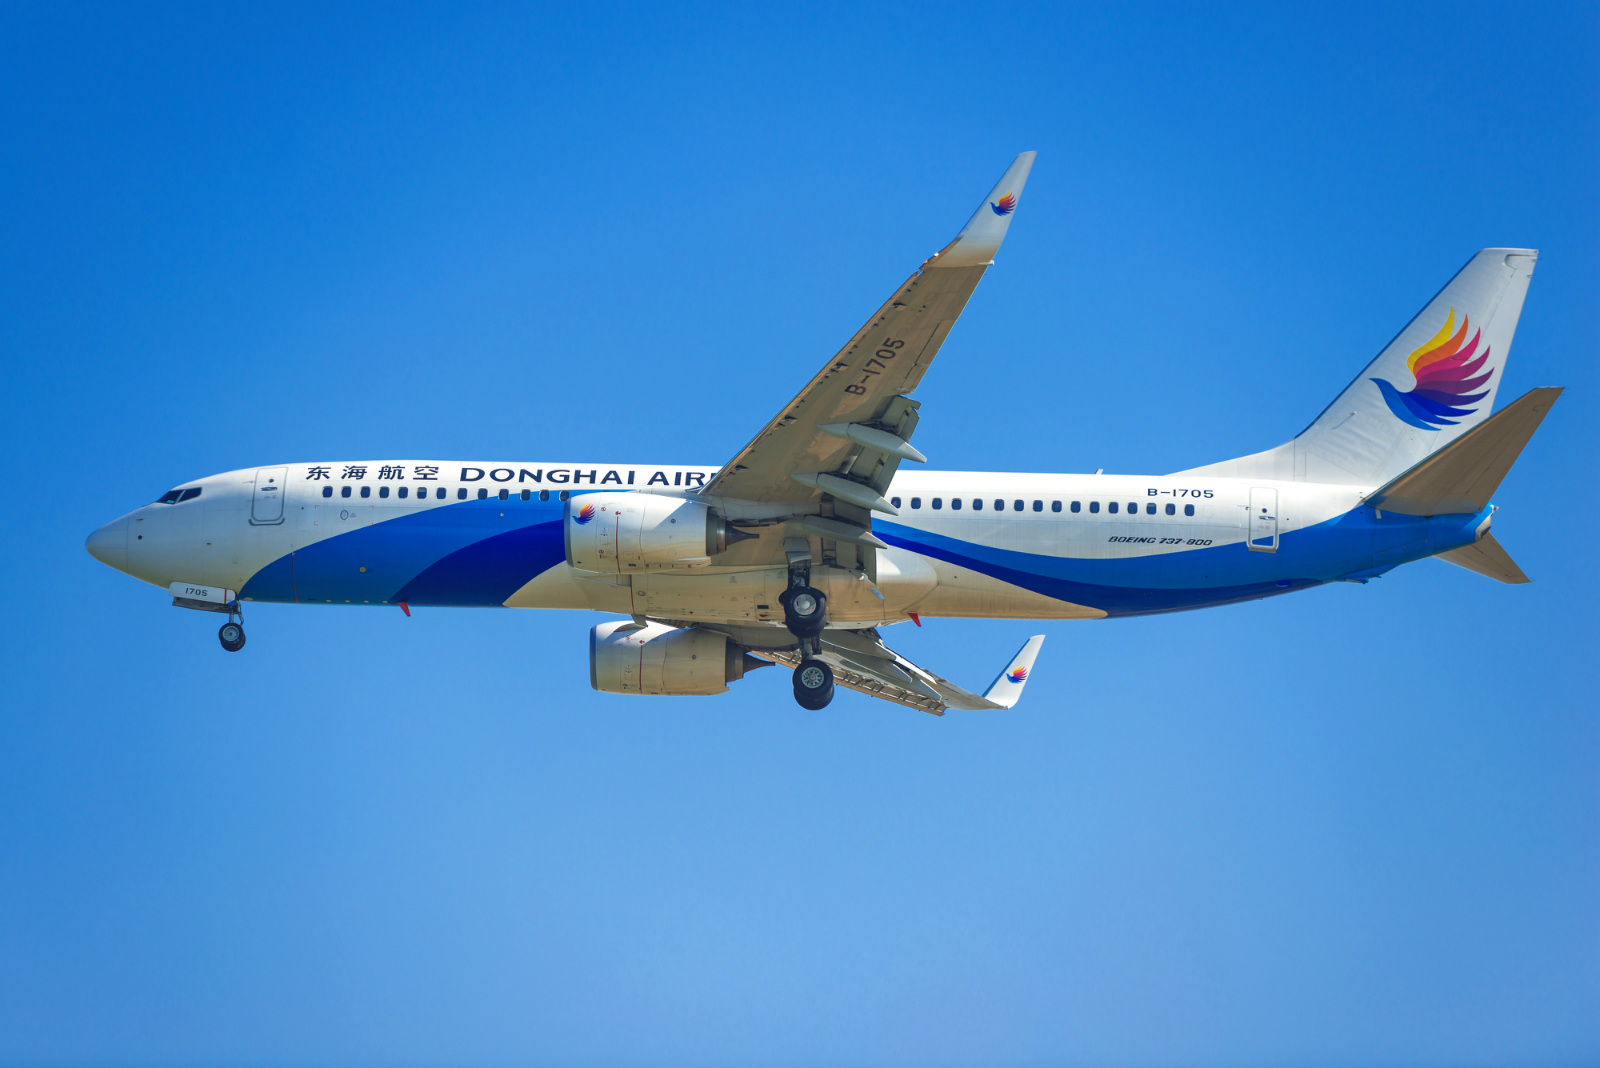 A Boeing 737-800 passenger jet of Donghai Airlines prepares to land at Shenzhen Baoan International Airport in Shenzhen city, south China's Guangdong province, 30 December 2014.[File photo: IC]